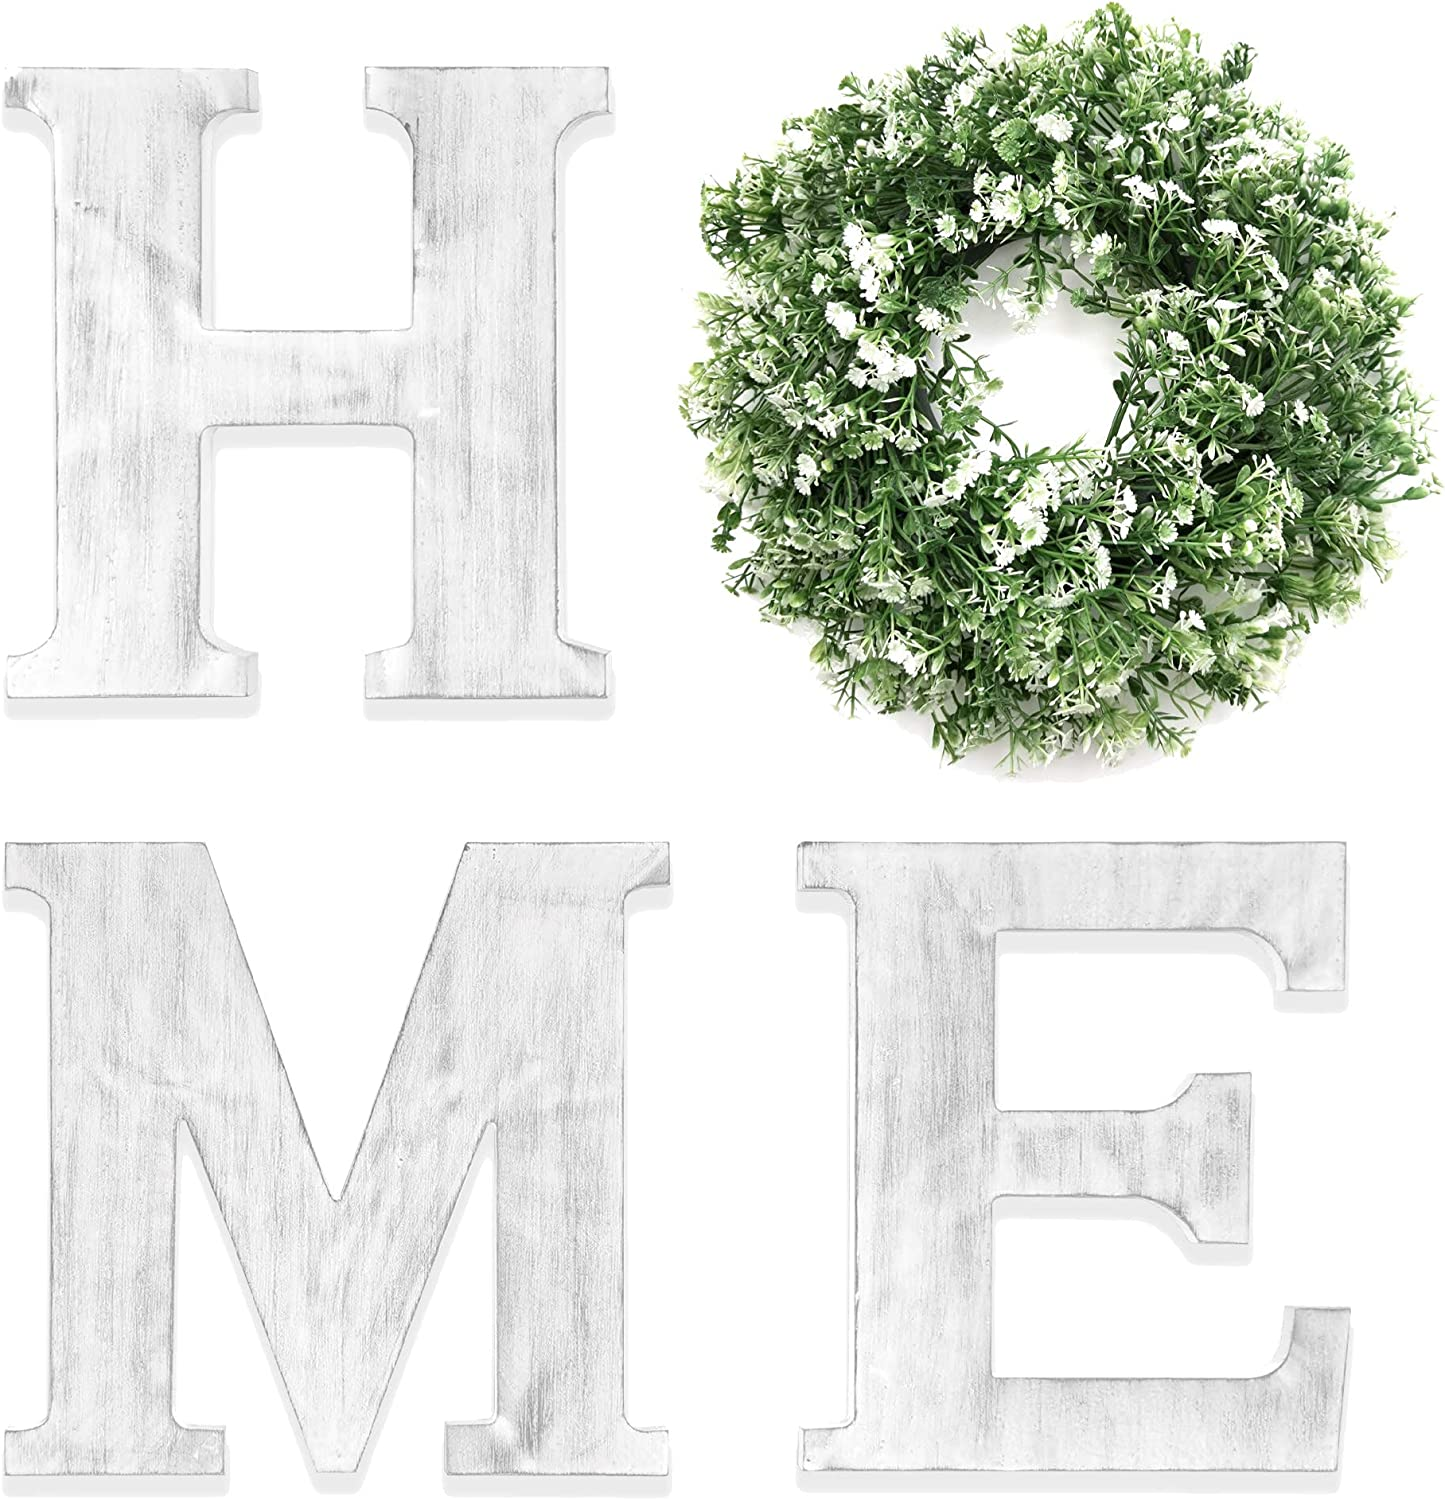 HnJOY White Rustic Home Sign for Living Room - Decorative Wreaths for Home - Wooden Letters Wall Decor with Artificial Eucalyptus - Farmhouse Family Sign with Wreath